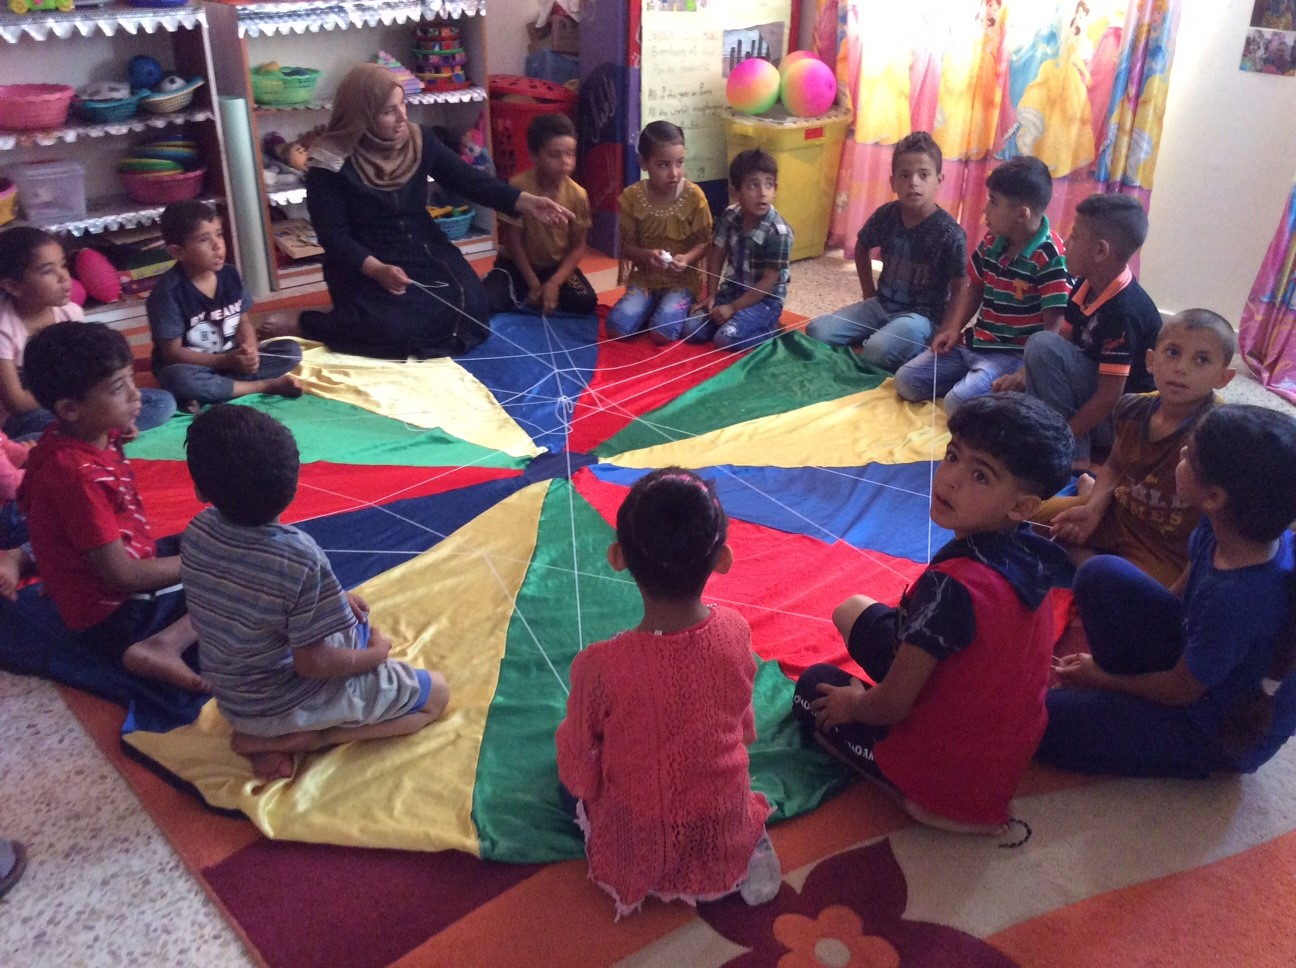 Palestinian children participate in psychosocial therapy at the Near East Council of Churches Clinic in Rafah, Gaza.